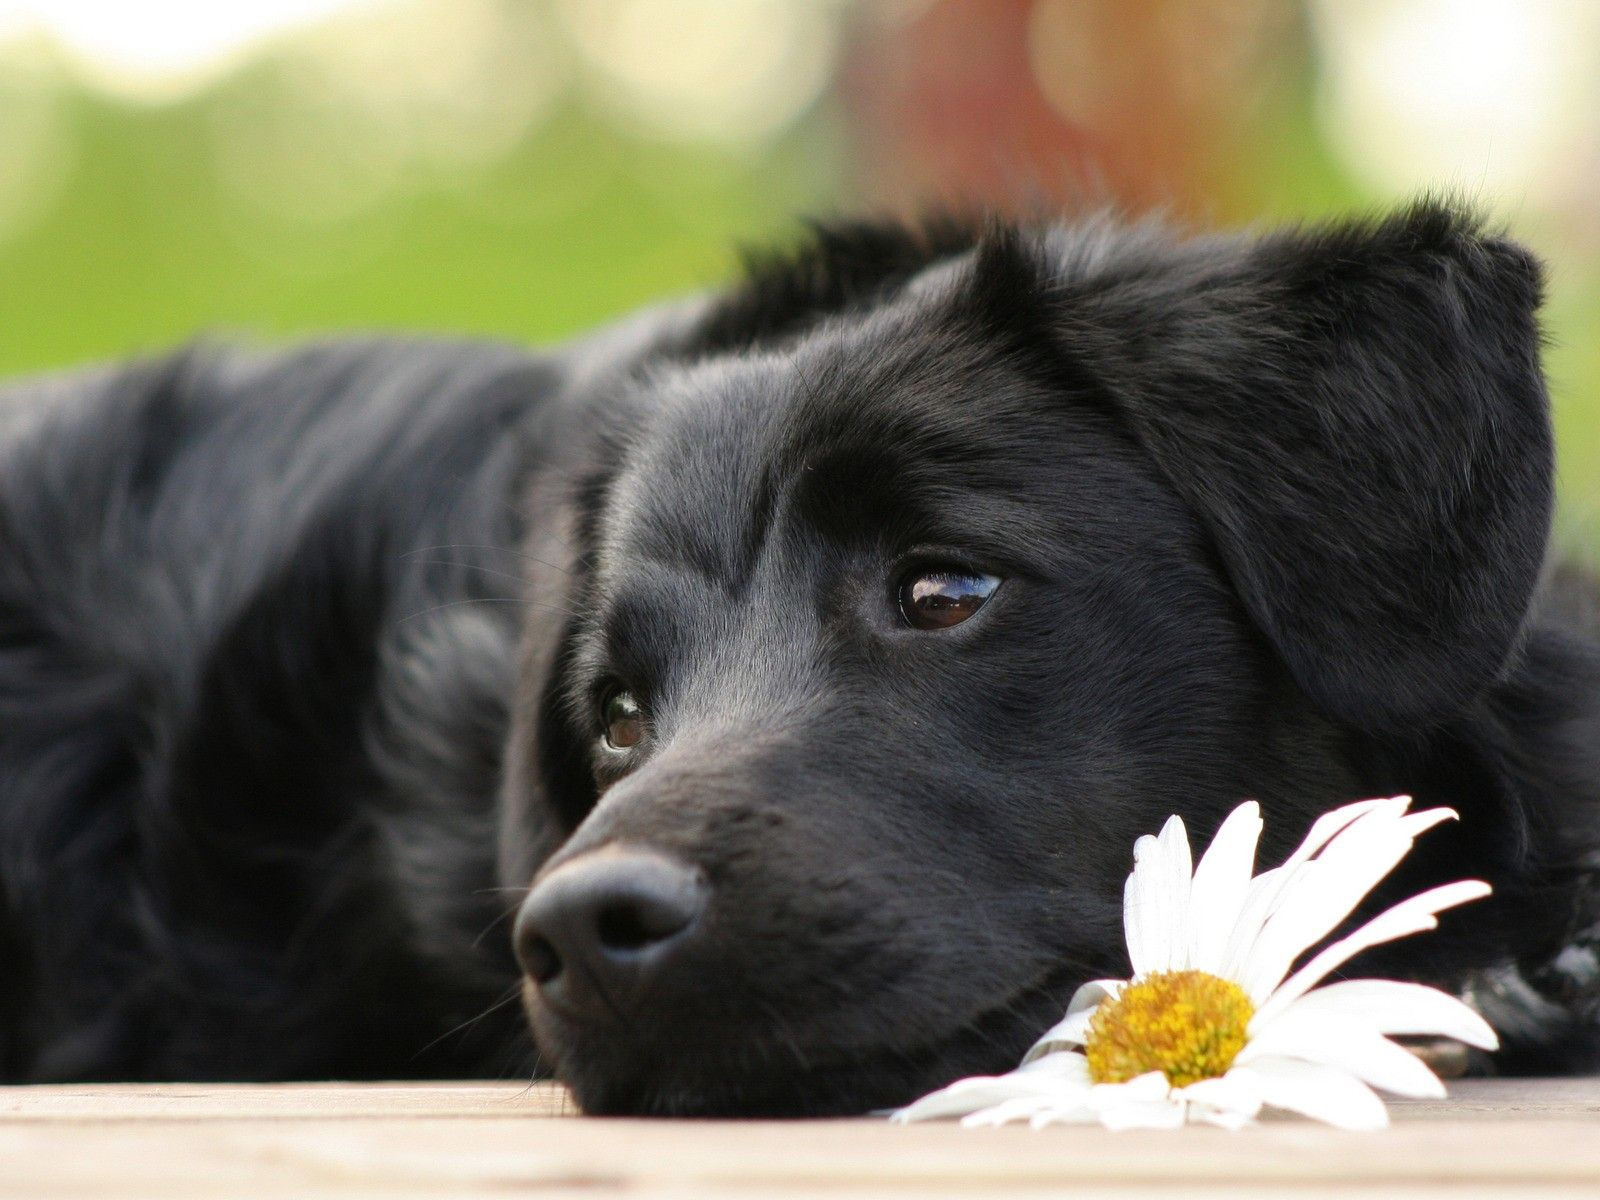 The Dog And The Flower Canis Lupus Familiaris 1600x1200 Baby Dogs Beautiful Dogs Funny Animals